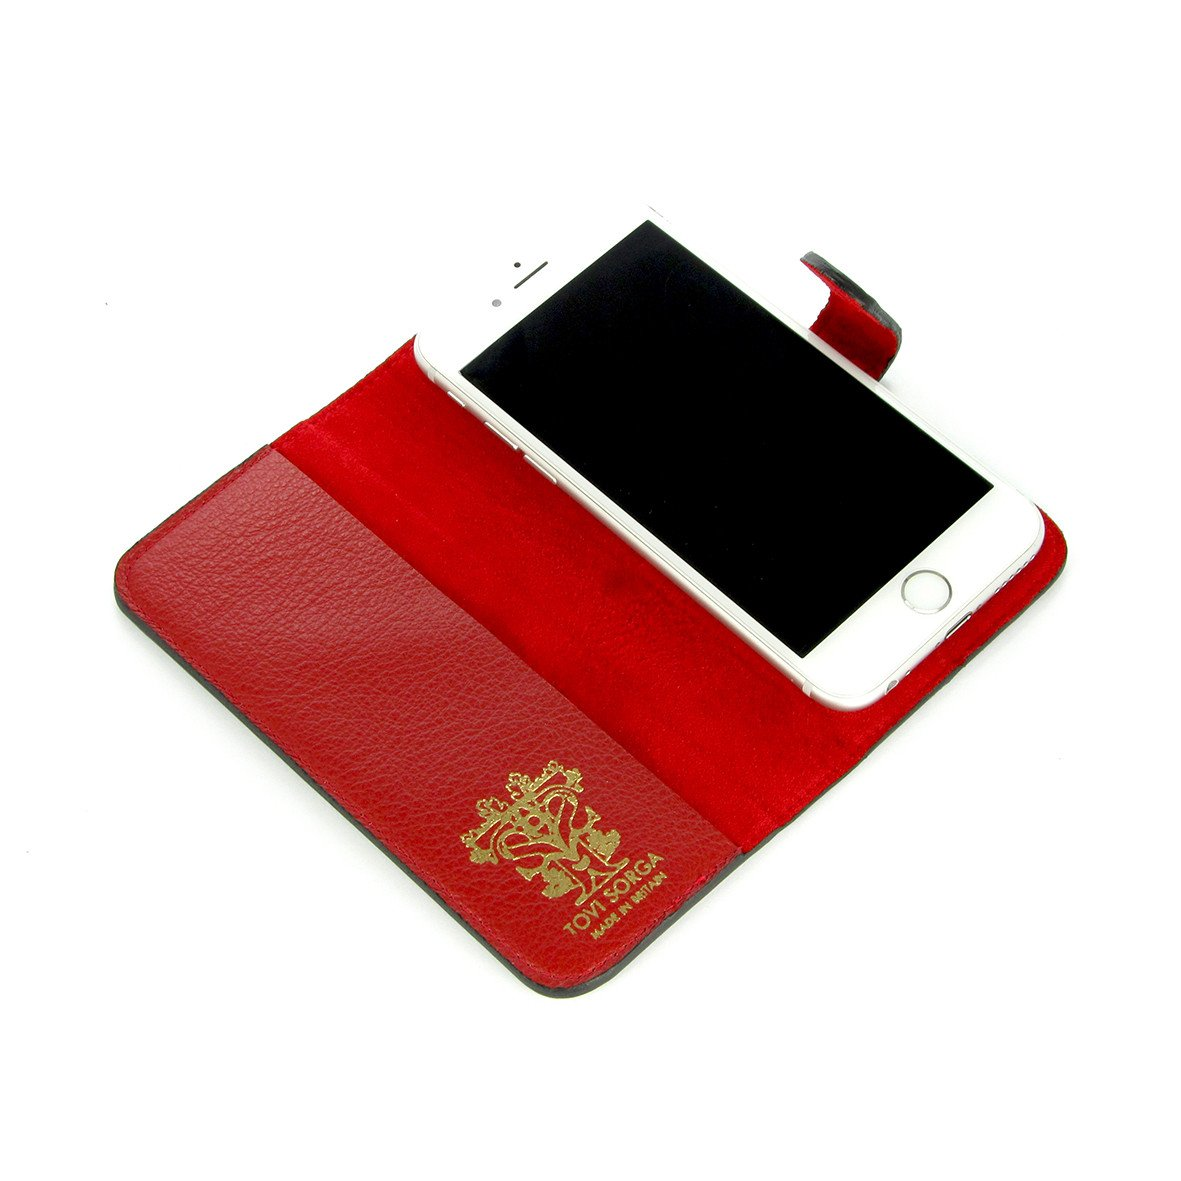 iPhone 11 Pro Max - Red Leather phone case - Folio Phone Case - A Dutch Spring - Lined phone case - Tovi Sorga - Rachel Rusch